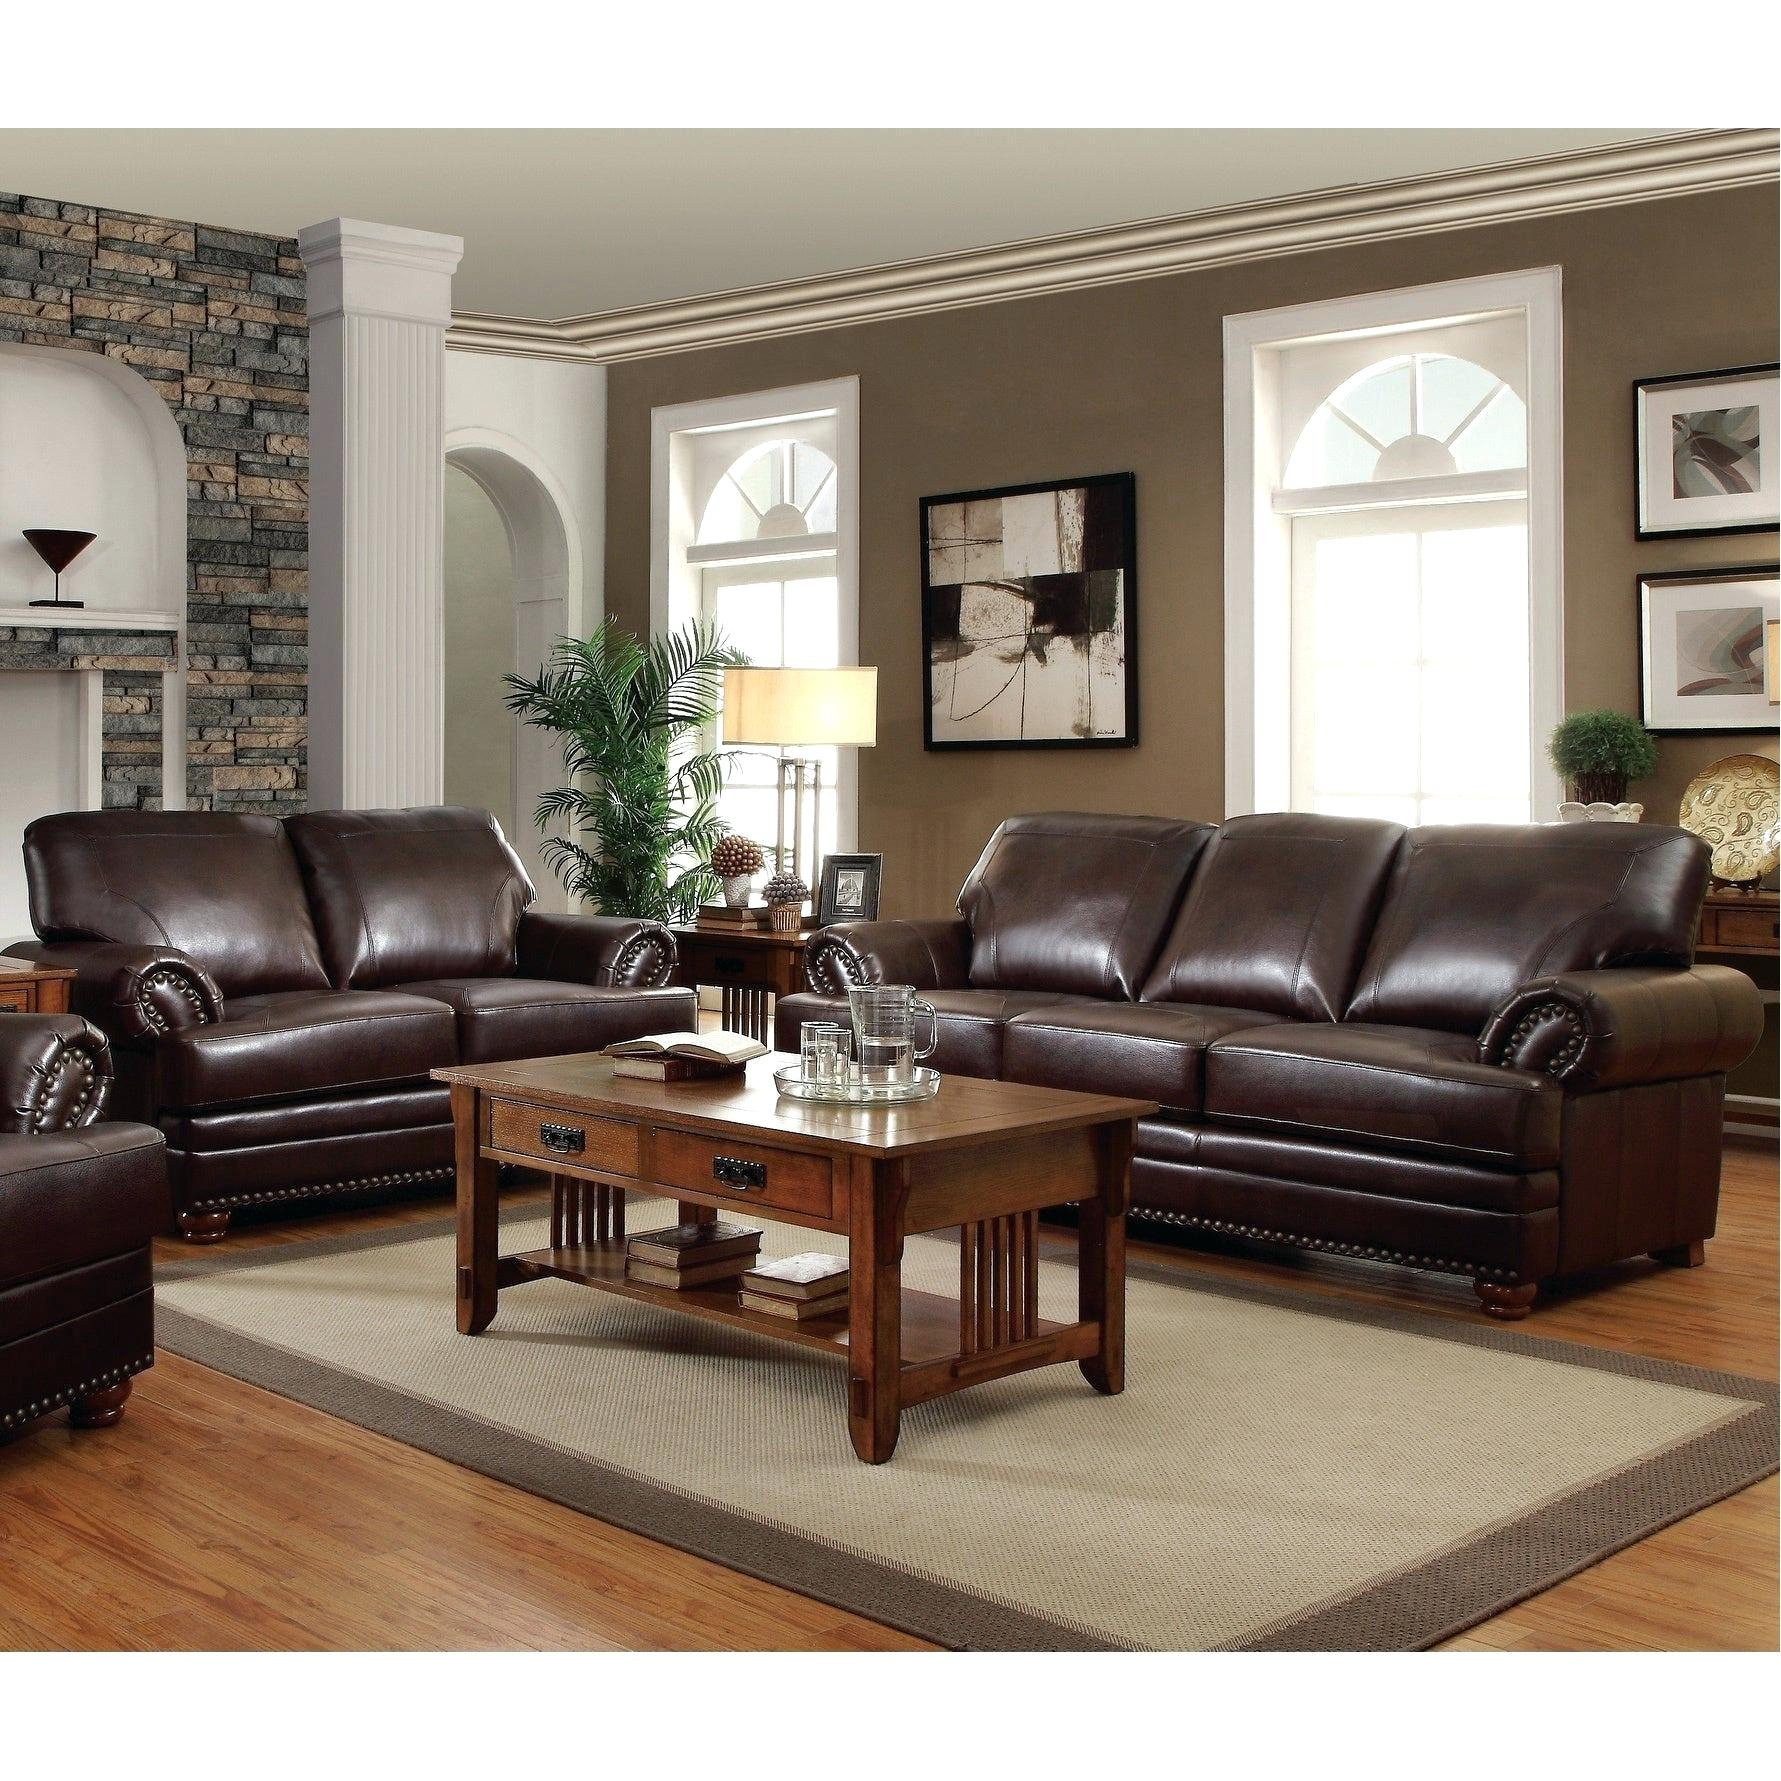 Leather Living Room Sets Brown 2 Piece Set Cheap Under 500 for 10 Awesome Designs of How to Makeover Living Room Sets Under 500